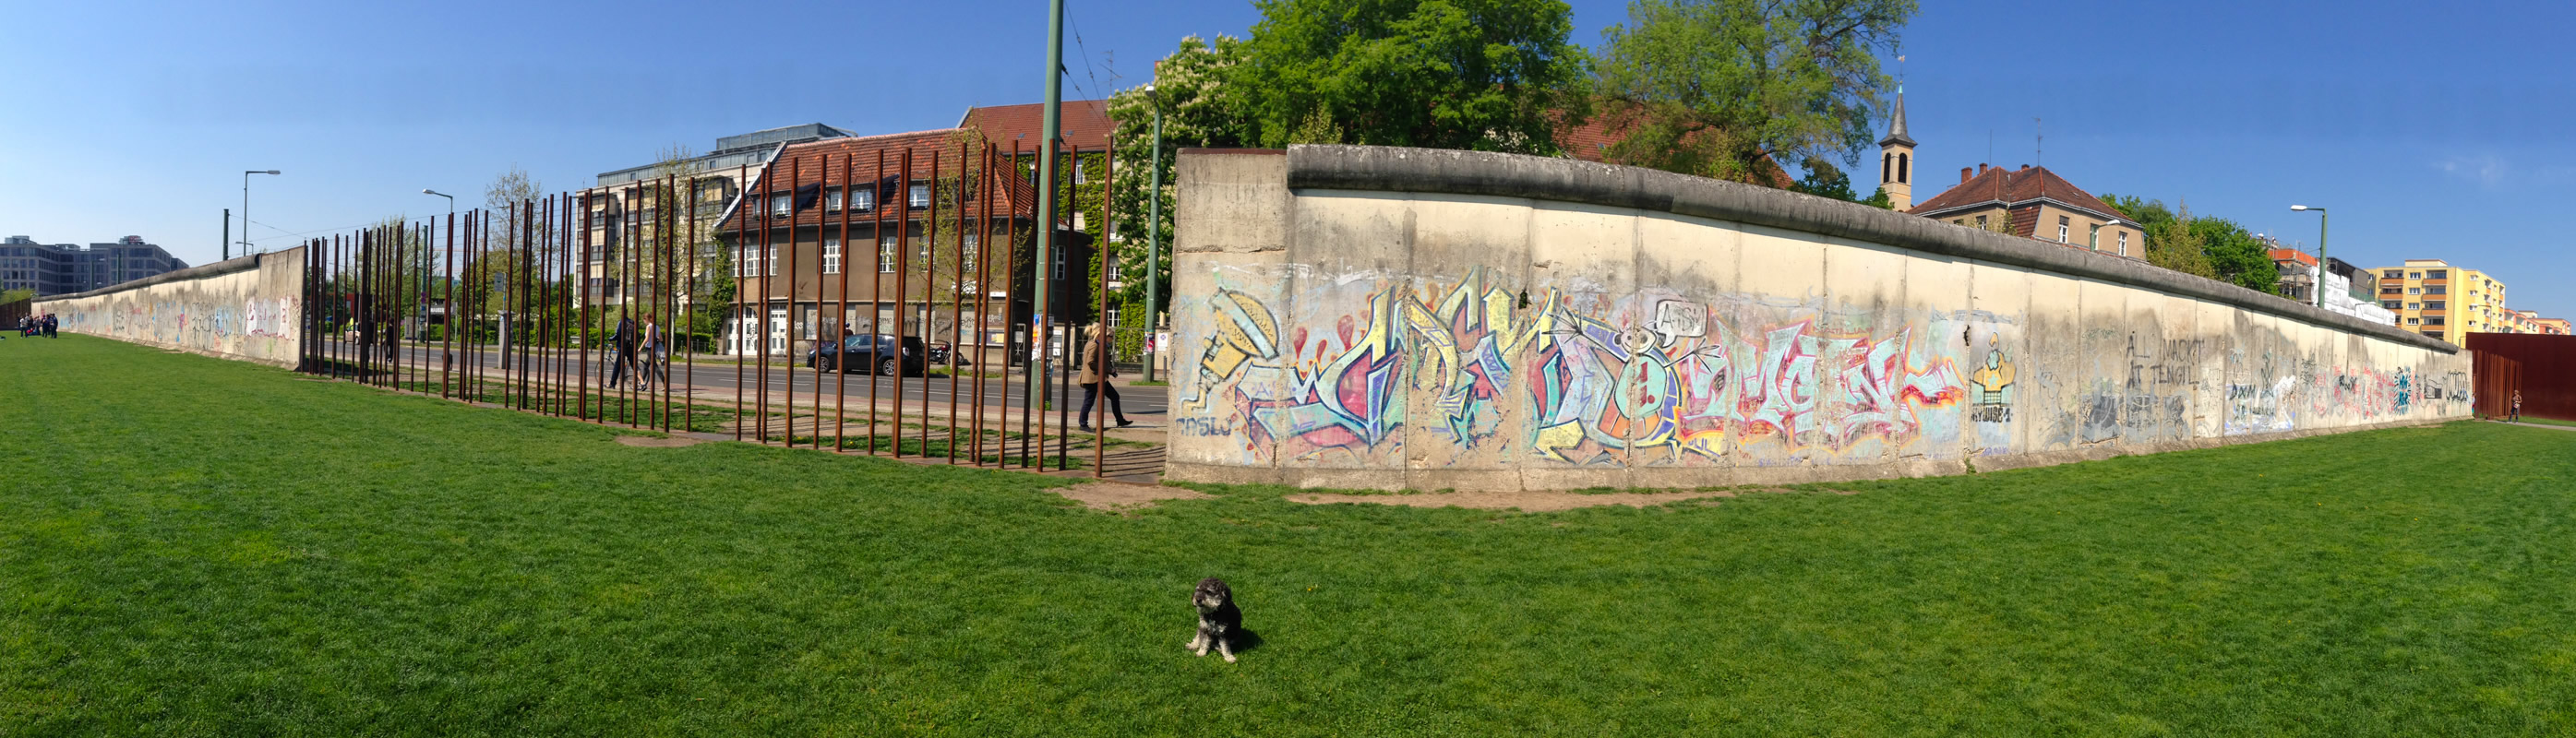 Willie sits in front of a Wall memorial on Bernauer Strasse in Berlin Germany